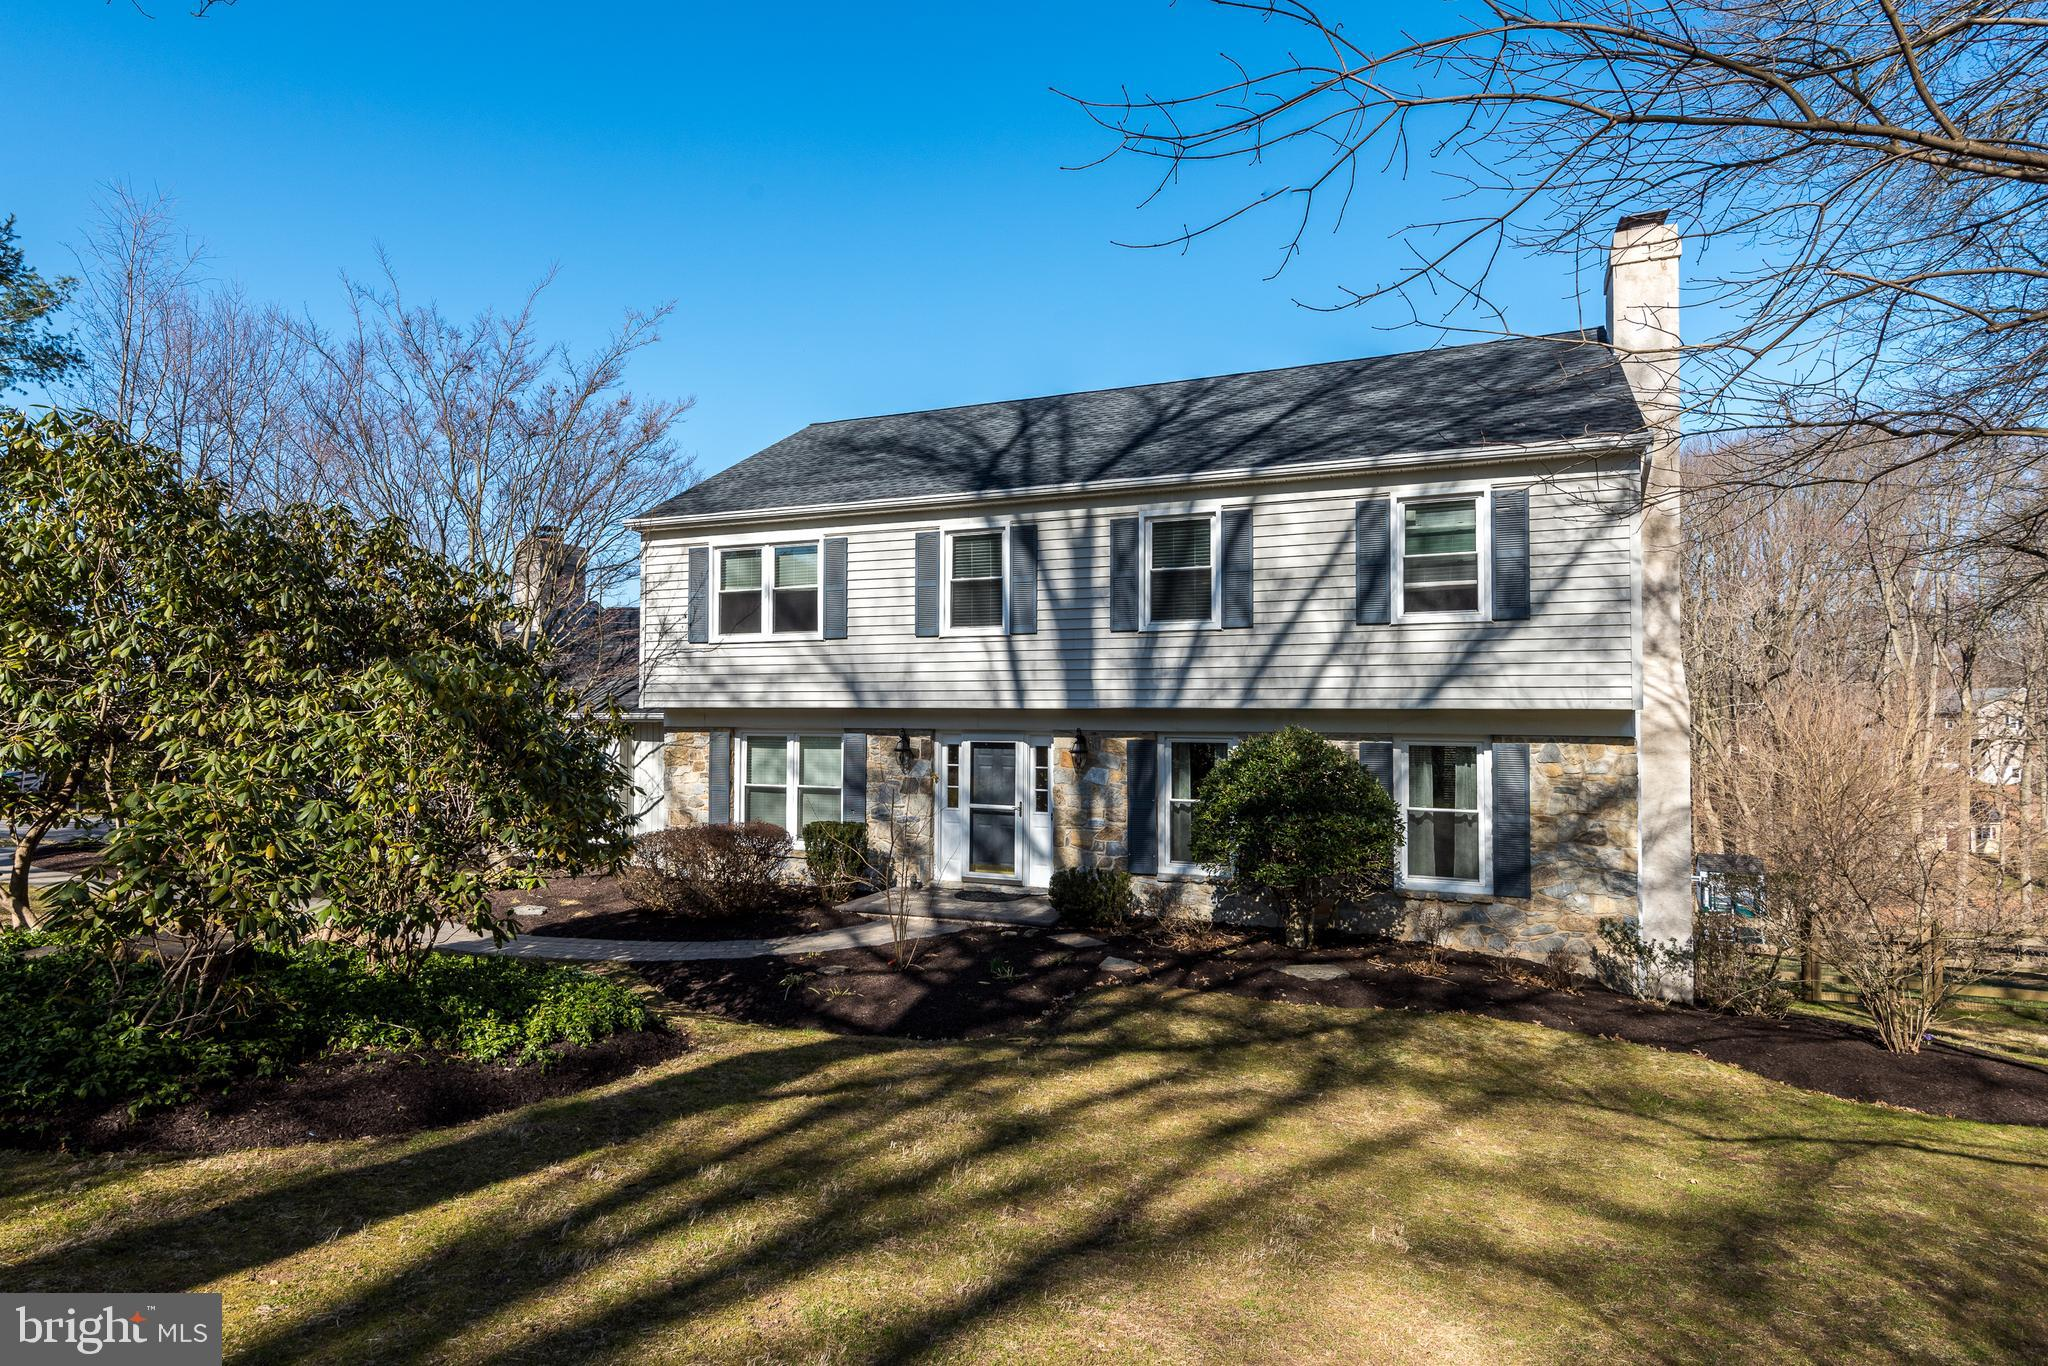 Showings begin Saturday 3/27 for this fabulous home in sought after Red Bridge Farm! This beautifully maintained, wonderfully updated colonial with stone and siding exterior is nestled on a full acre lot with spectacular wooded views. With neutral décor throughout, this home is move-in ready. A paver walkway brings you to the front door, which opens to a welcoming foyer. To the right of the foyer is a large living room with crown molding and one of two gas fireplaces. To the left of the foyer is an office/study, ever so useful in today's world. Straight ahead is the kitchen, the heart of the home. Featuring beadboard wainscoting, cherry cabinetry, granite counters, stainless Steel appliances and a contrasting island with cream cabinetry, you'll love cooking and entertaining in this great space. Glass doors from the breakfast area lead to an oversized, tiered composite deck that overlooks the expansive backyard with beautiful views all year round. To the left of the kitchen is the dining room accented with chair rail and crown molding with plenty of room to host your favorite guests. A few steps from the other side of the kitchen is the wonderfully large family room with a brick surround gas fireplace and picture window to the outside. Off the family room is a sunroom, another perfect oasis for relaxing.  An updated powder room and convenient laundry room complete the main floor.  Upstairs to the left is the owner's suite with a large walk-in closet, dressing area with vanity/counter and beautifully updated bathroom with oversized stall shower, right from the Restoration Hardware handbook.  There are three additional generously sized bedrooms and a second, stunning updated bathroom with double vanity and modern tiled tub/shower surround. The walk out basement is fully finished, offering another level to relax and entertain in. The basement also has a large storage area.  Additional storage is offered in the floored attic space accessed from the second floor. The home